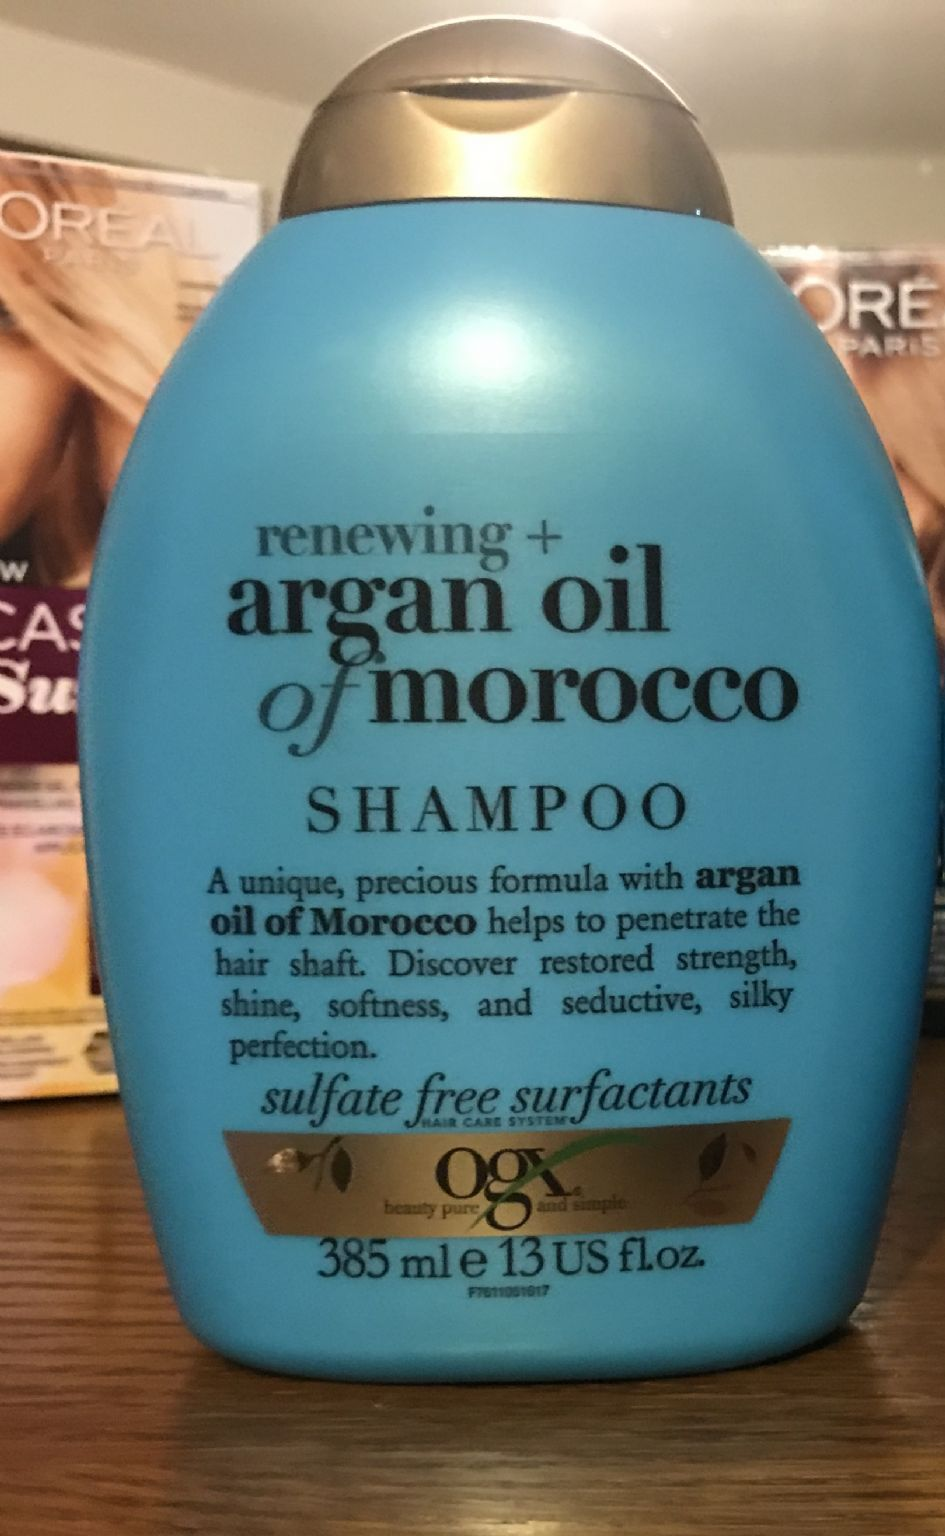 ogx renewing moroccan argan oil shampoo reviews photos. Black Bedroom Furniture Sets. Home Design Ideas